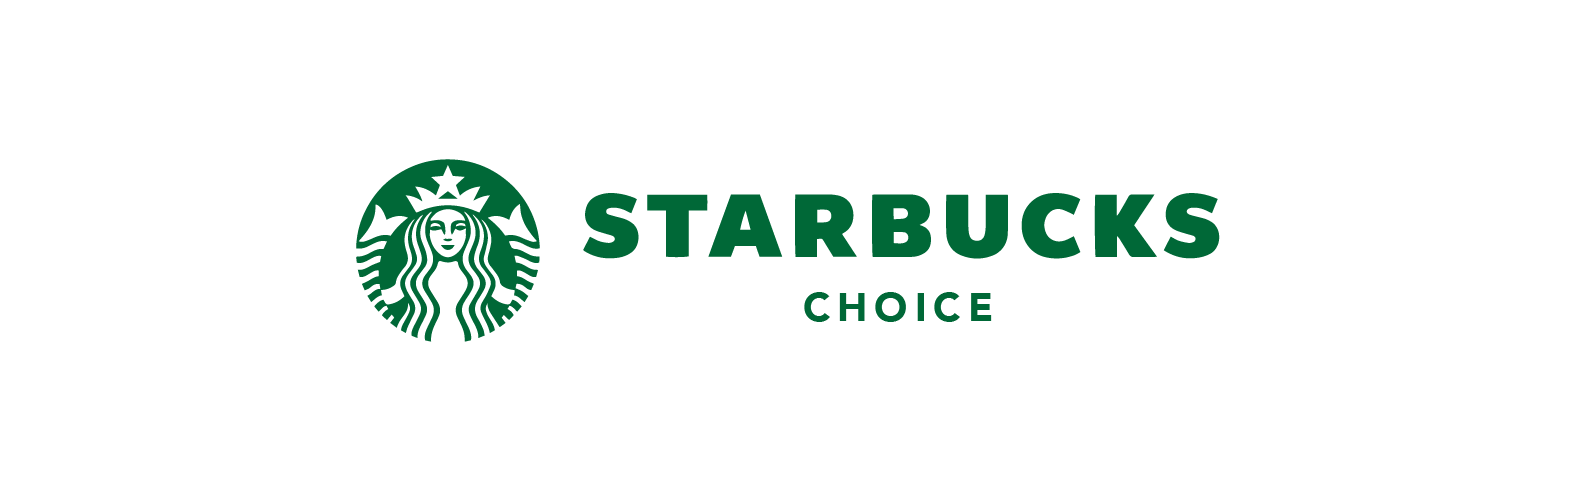 Starbucks_Alternative-02.png